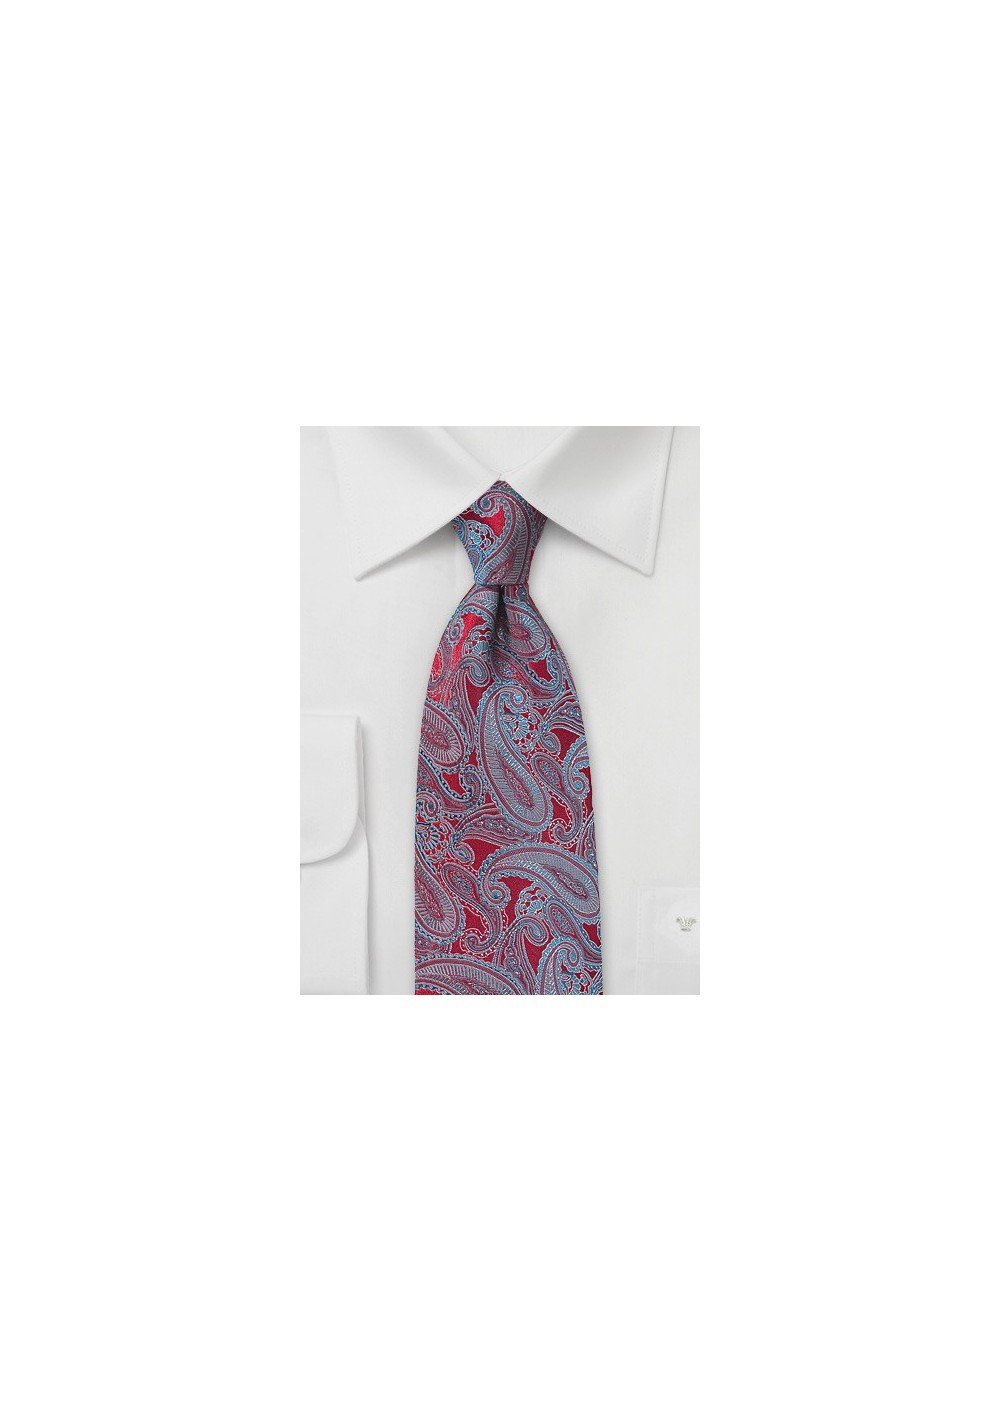 Red Necktie with Silver and Turquoise Paisleys